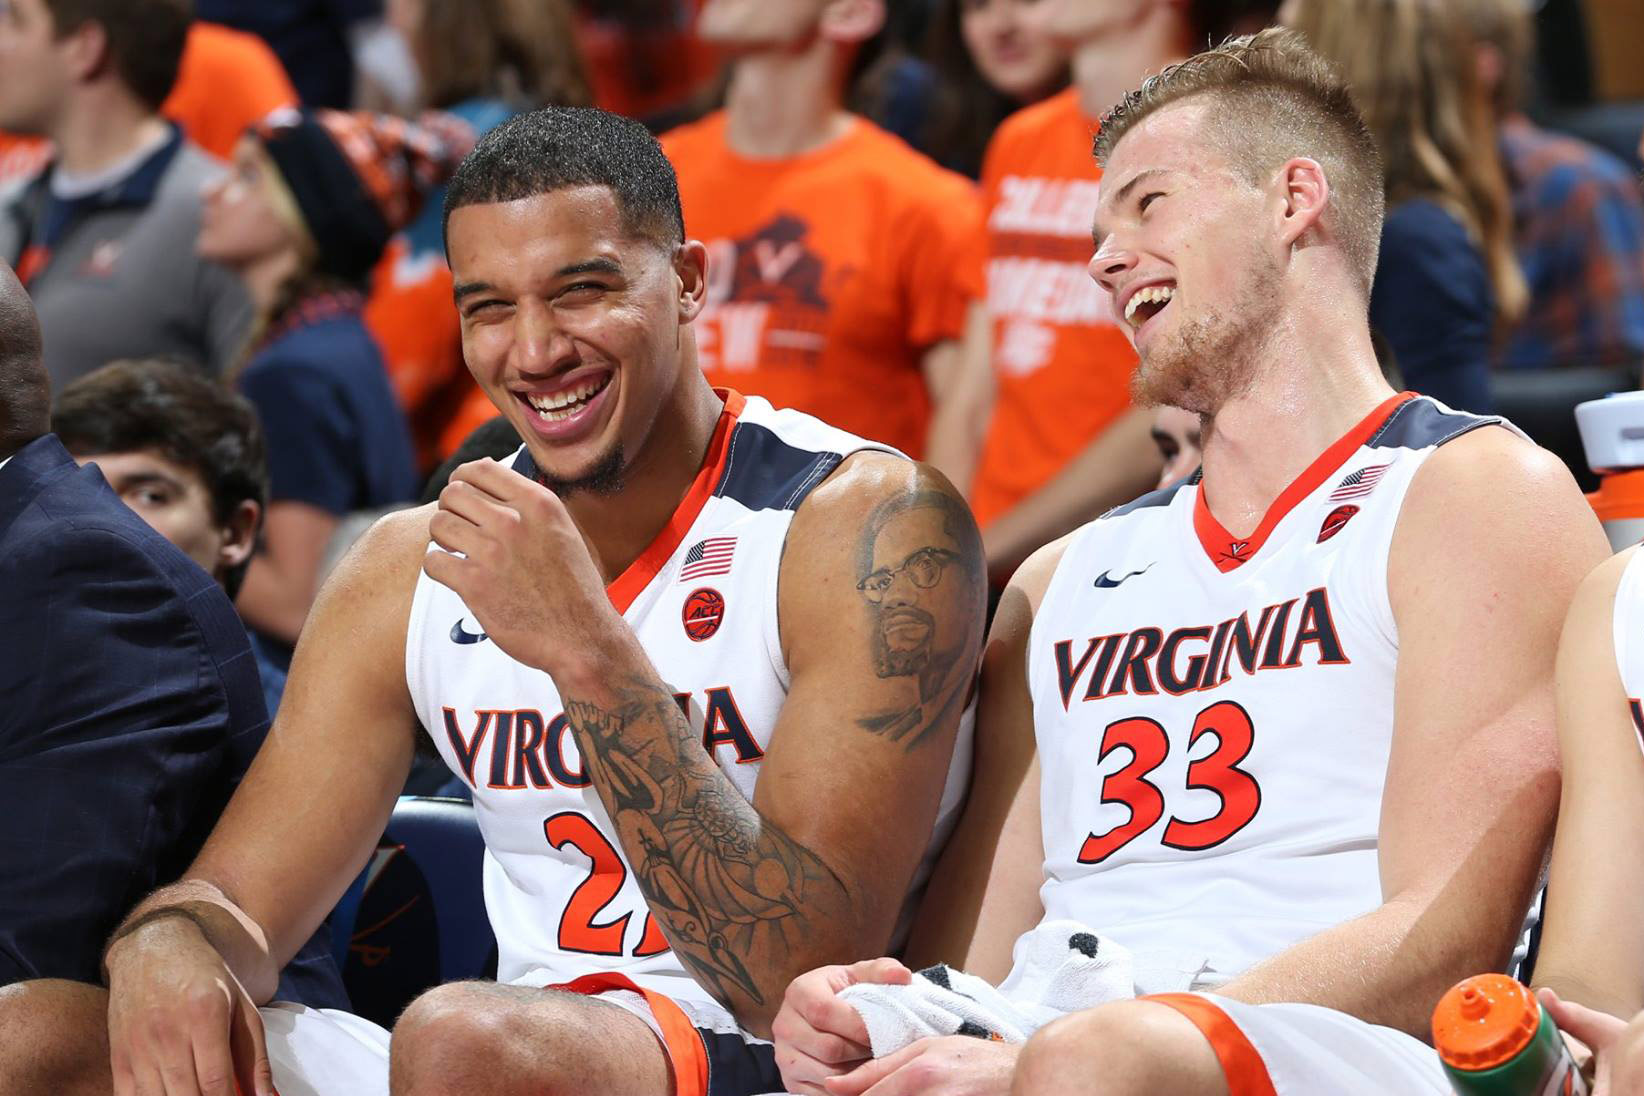 Wilkins said his teammates, including his former roommate and close friend Jack Salt, have provided constant, invaluable support. (Photo by Matt Riley, UVA Athletics)